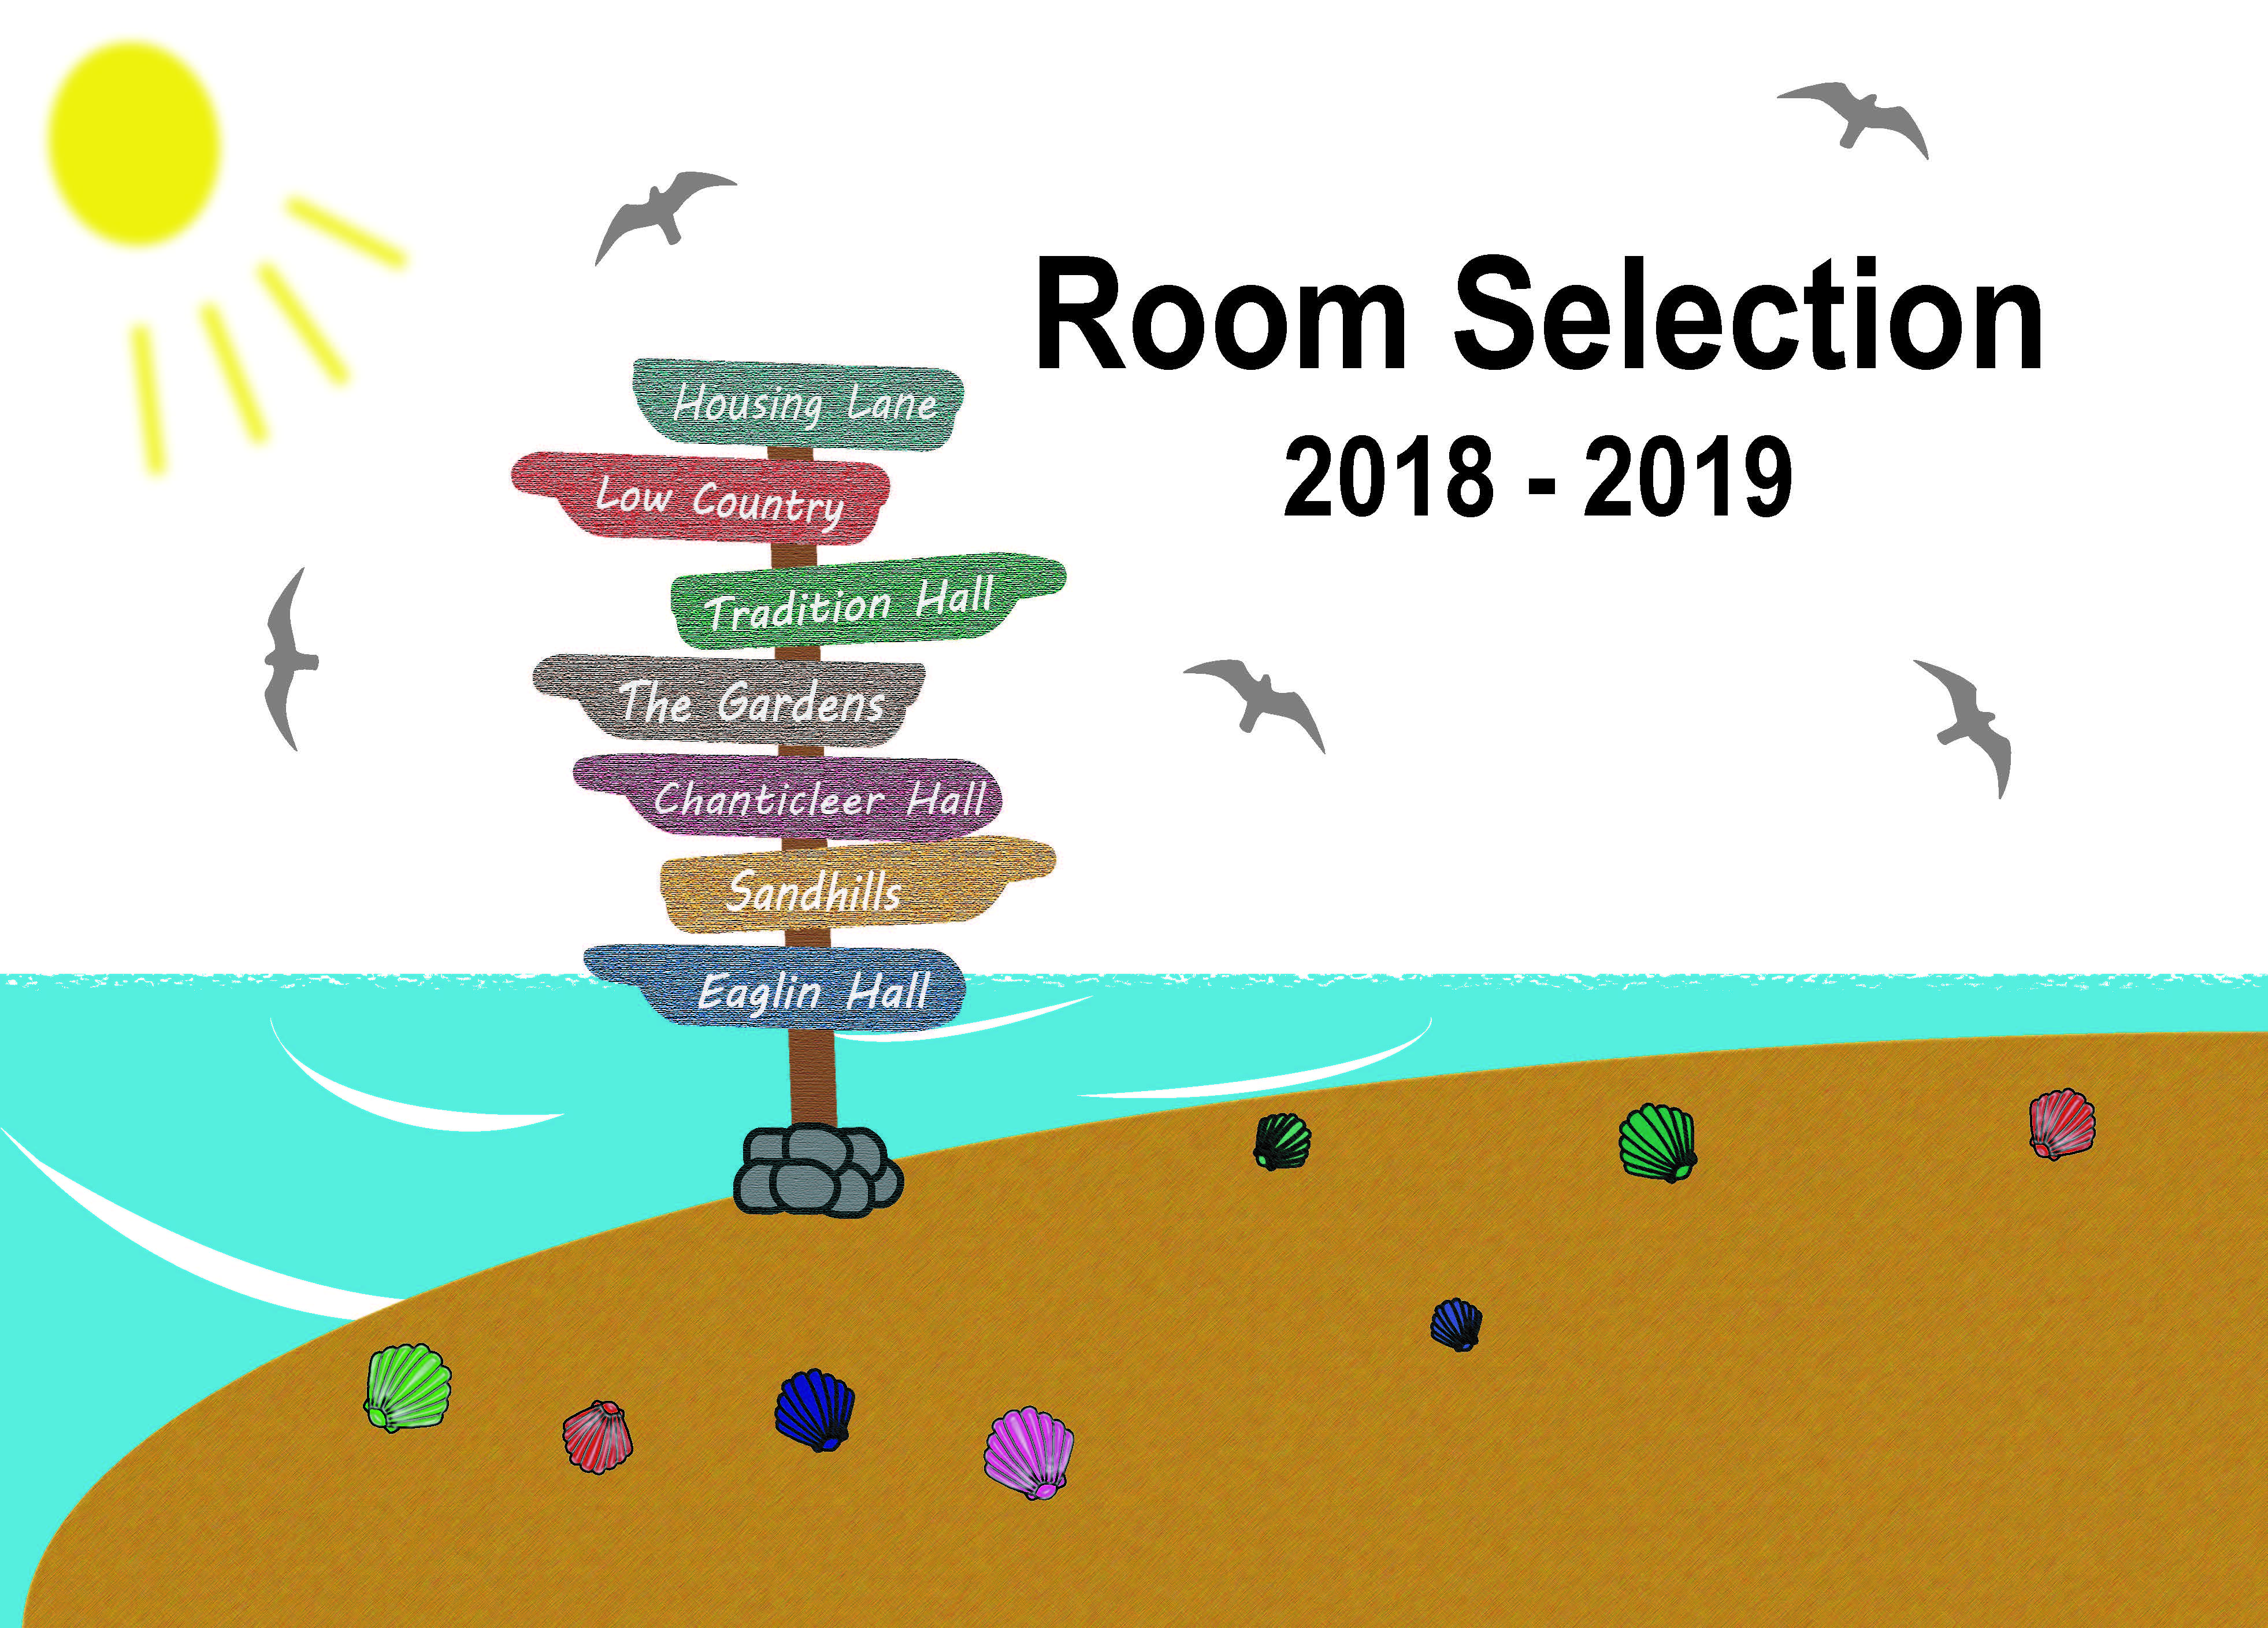 Room Selection 2018-2019